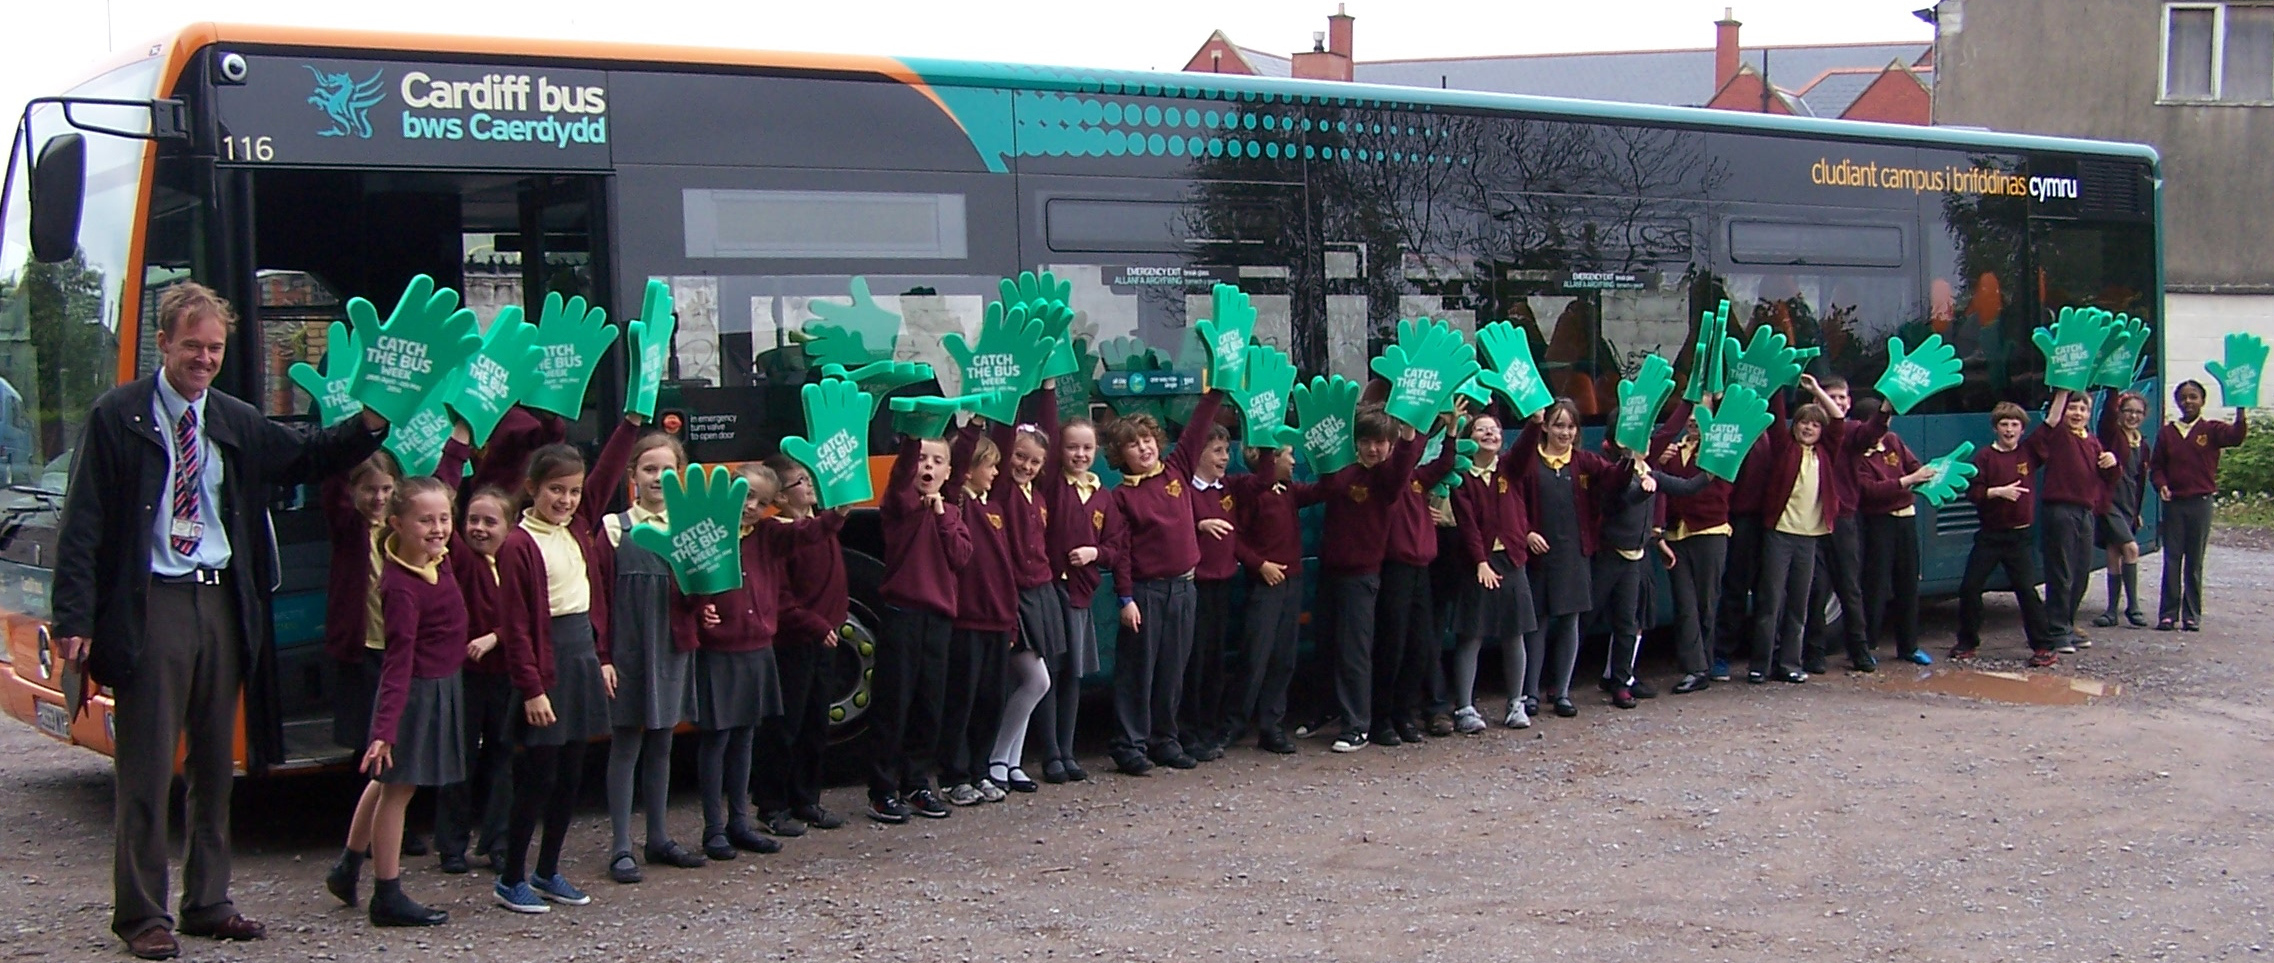 SCHOOL BUS: Pupils from Victoria Primary School with a Cardiff Bus